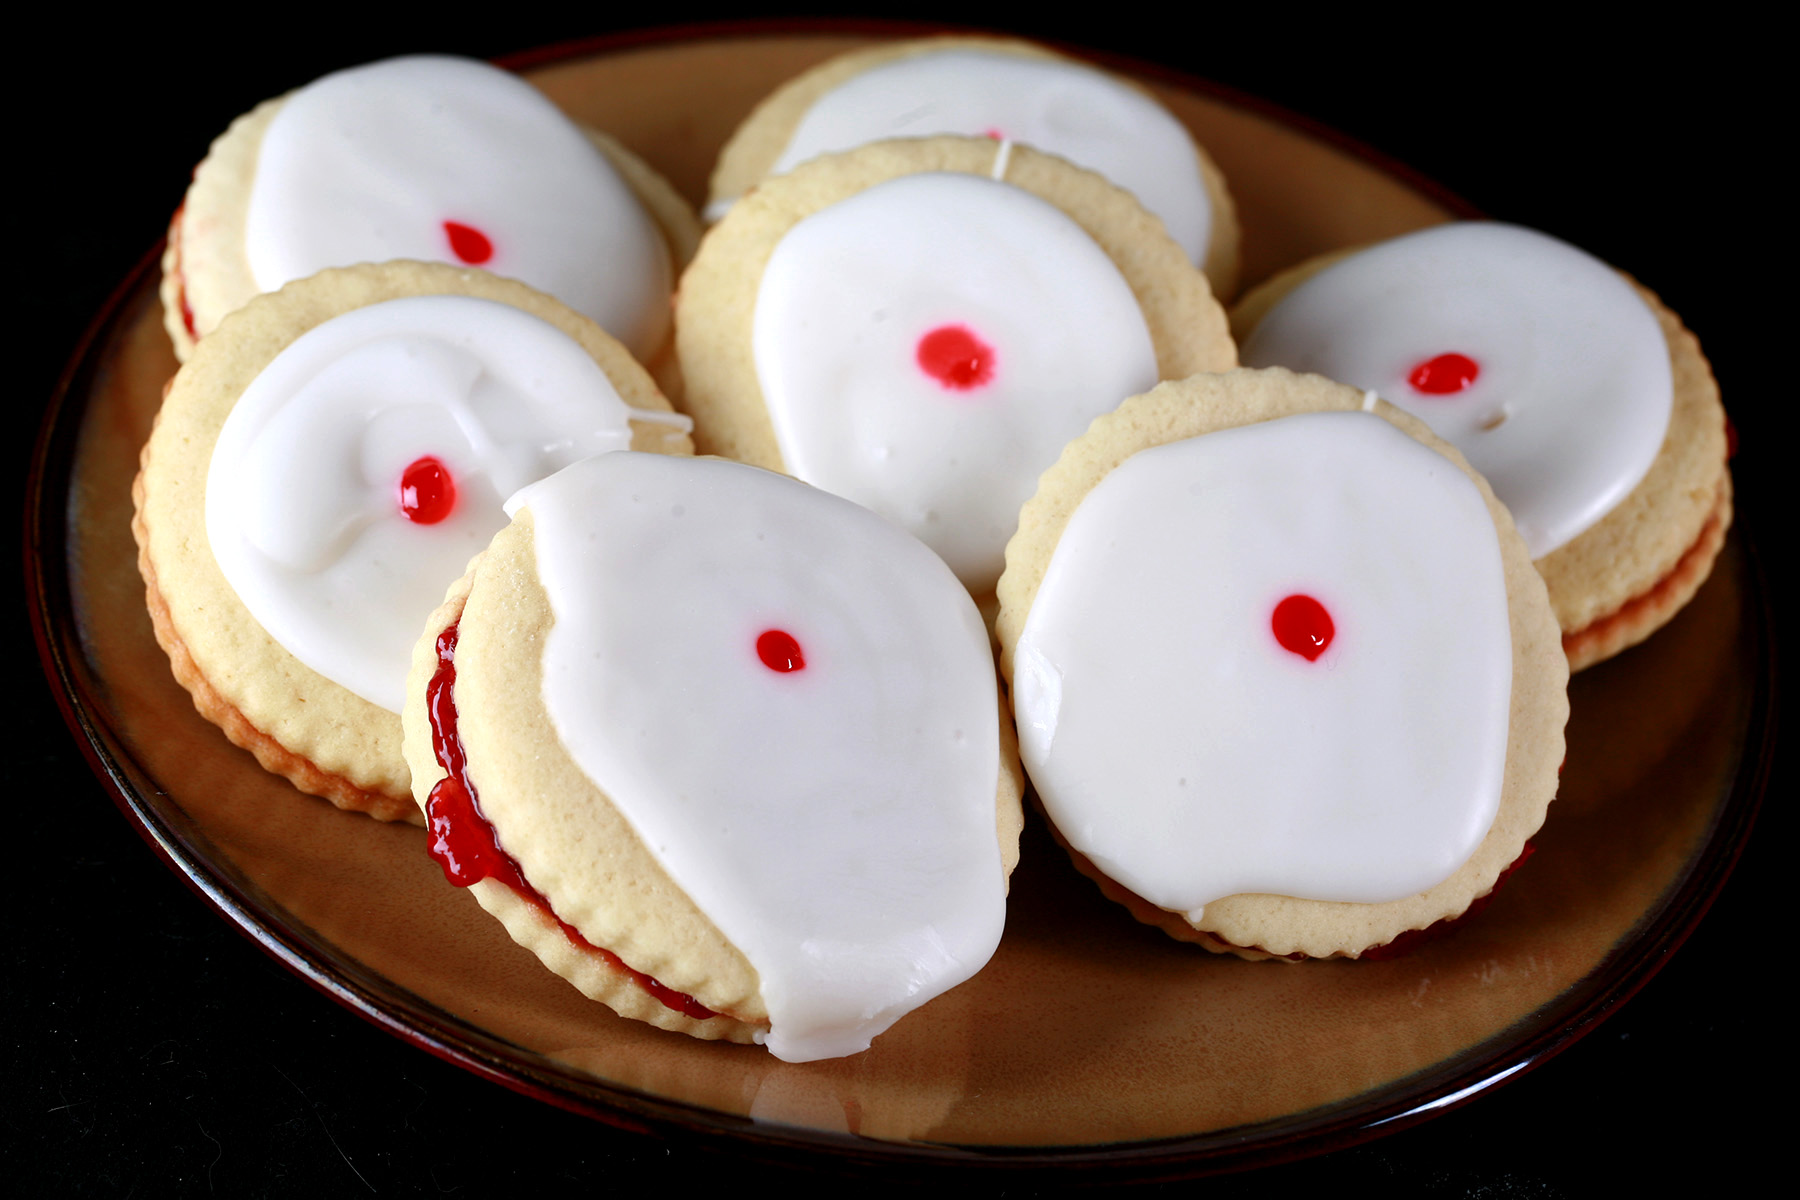 """Close up view of a plate of gluten-free imperial cookies: Sandwich cookies filled with raspberry jam, frosted with a white glaze, and finished off with a dot of red gel in the center."